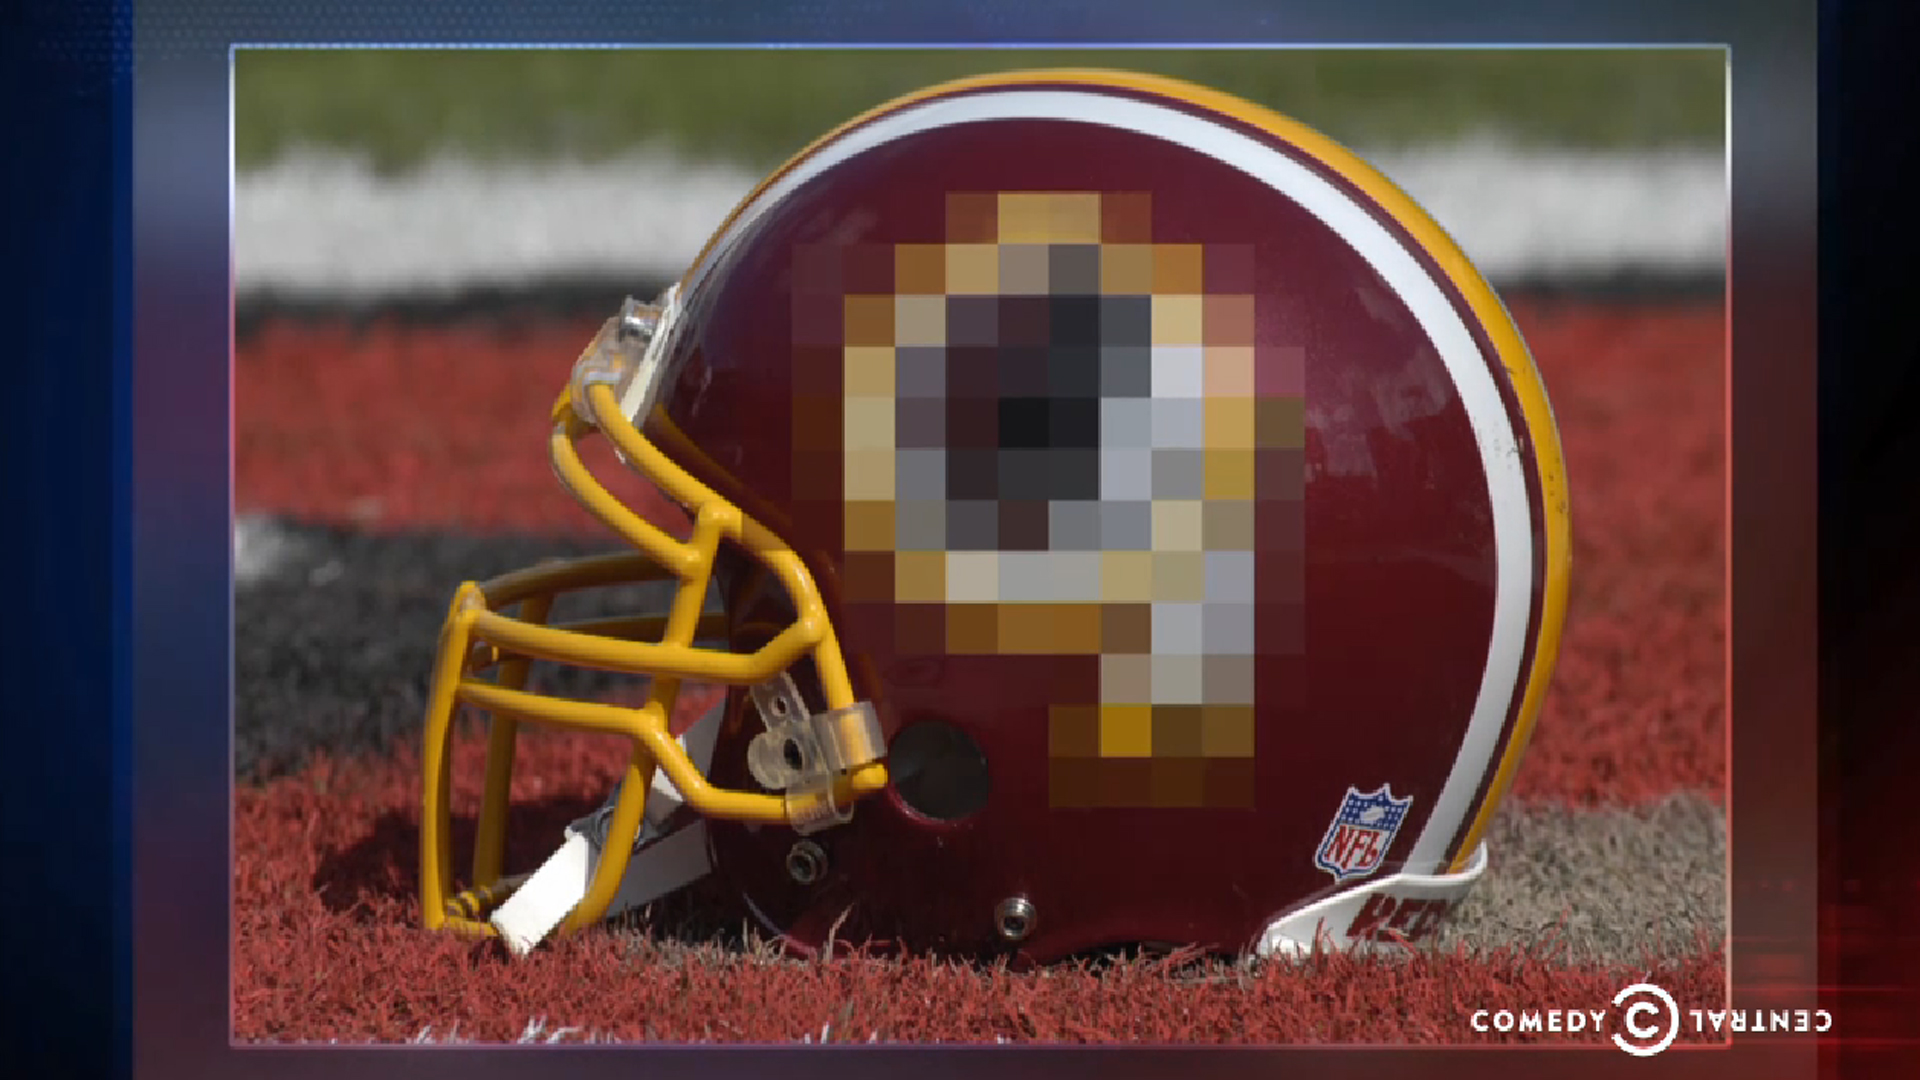 Indiana high school drops 'Redskins' nickname despite community discontent